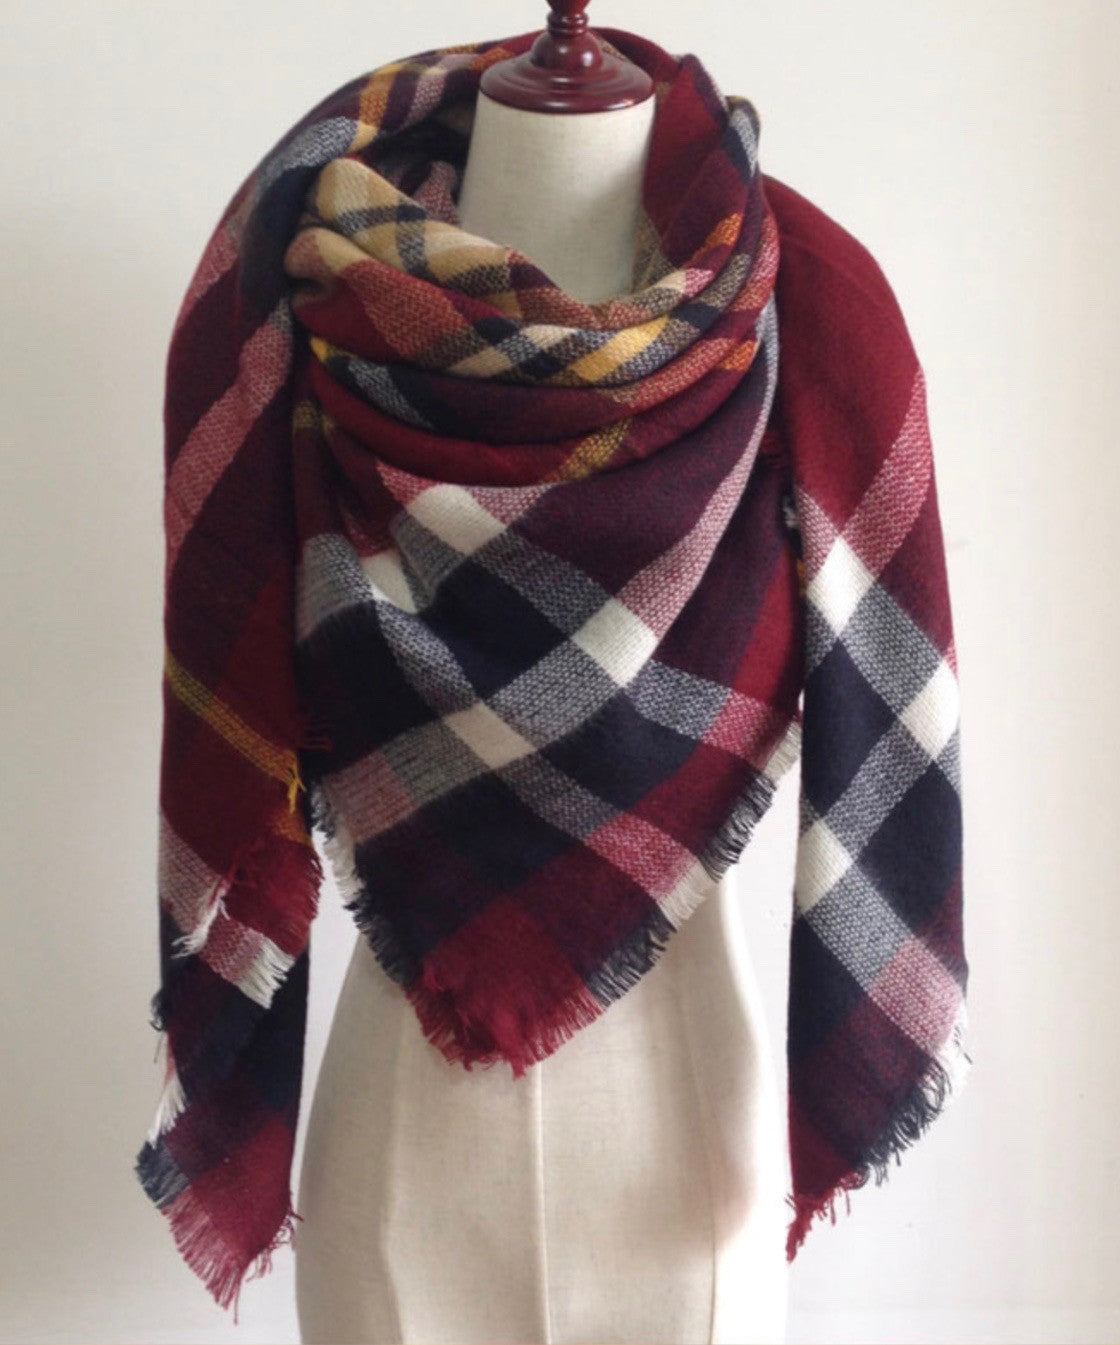 1d8c596fe Burgundy Red, Navy Blue, and White Plaid Blanket Scarf Fall and Winter –  RandomRegalia